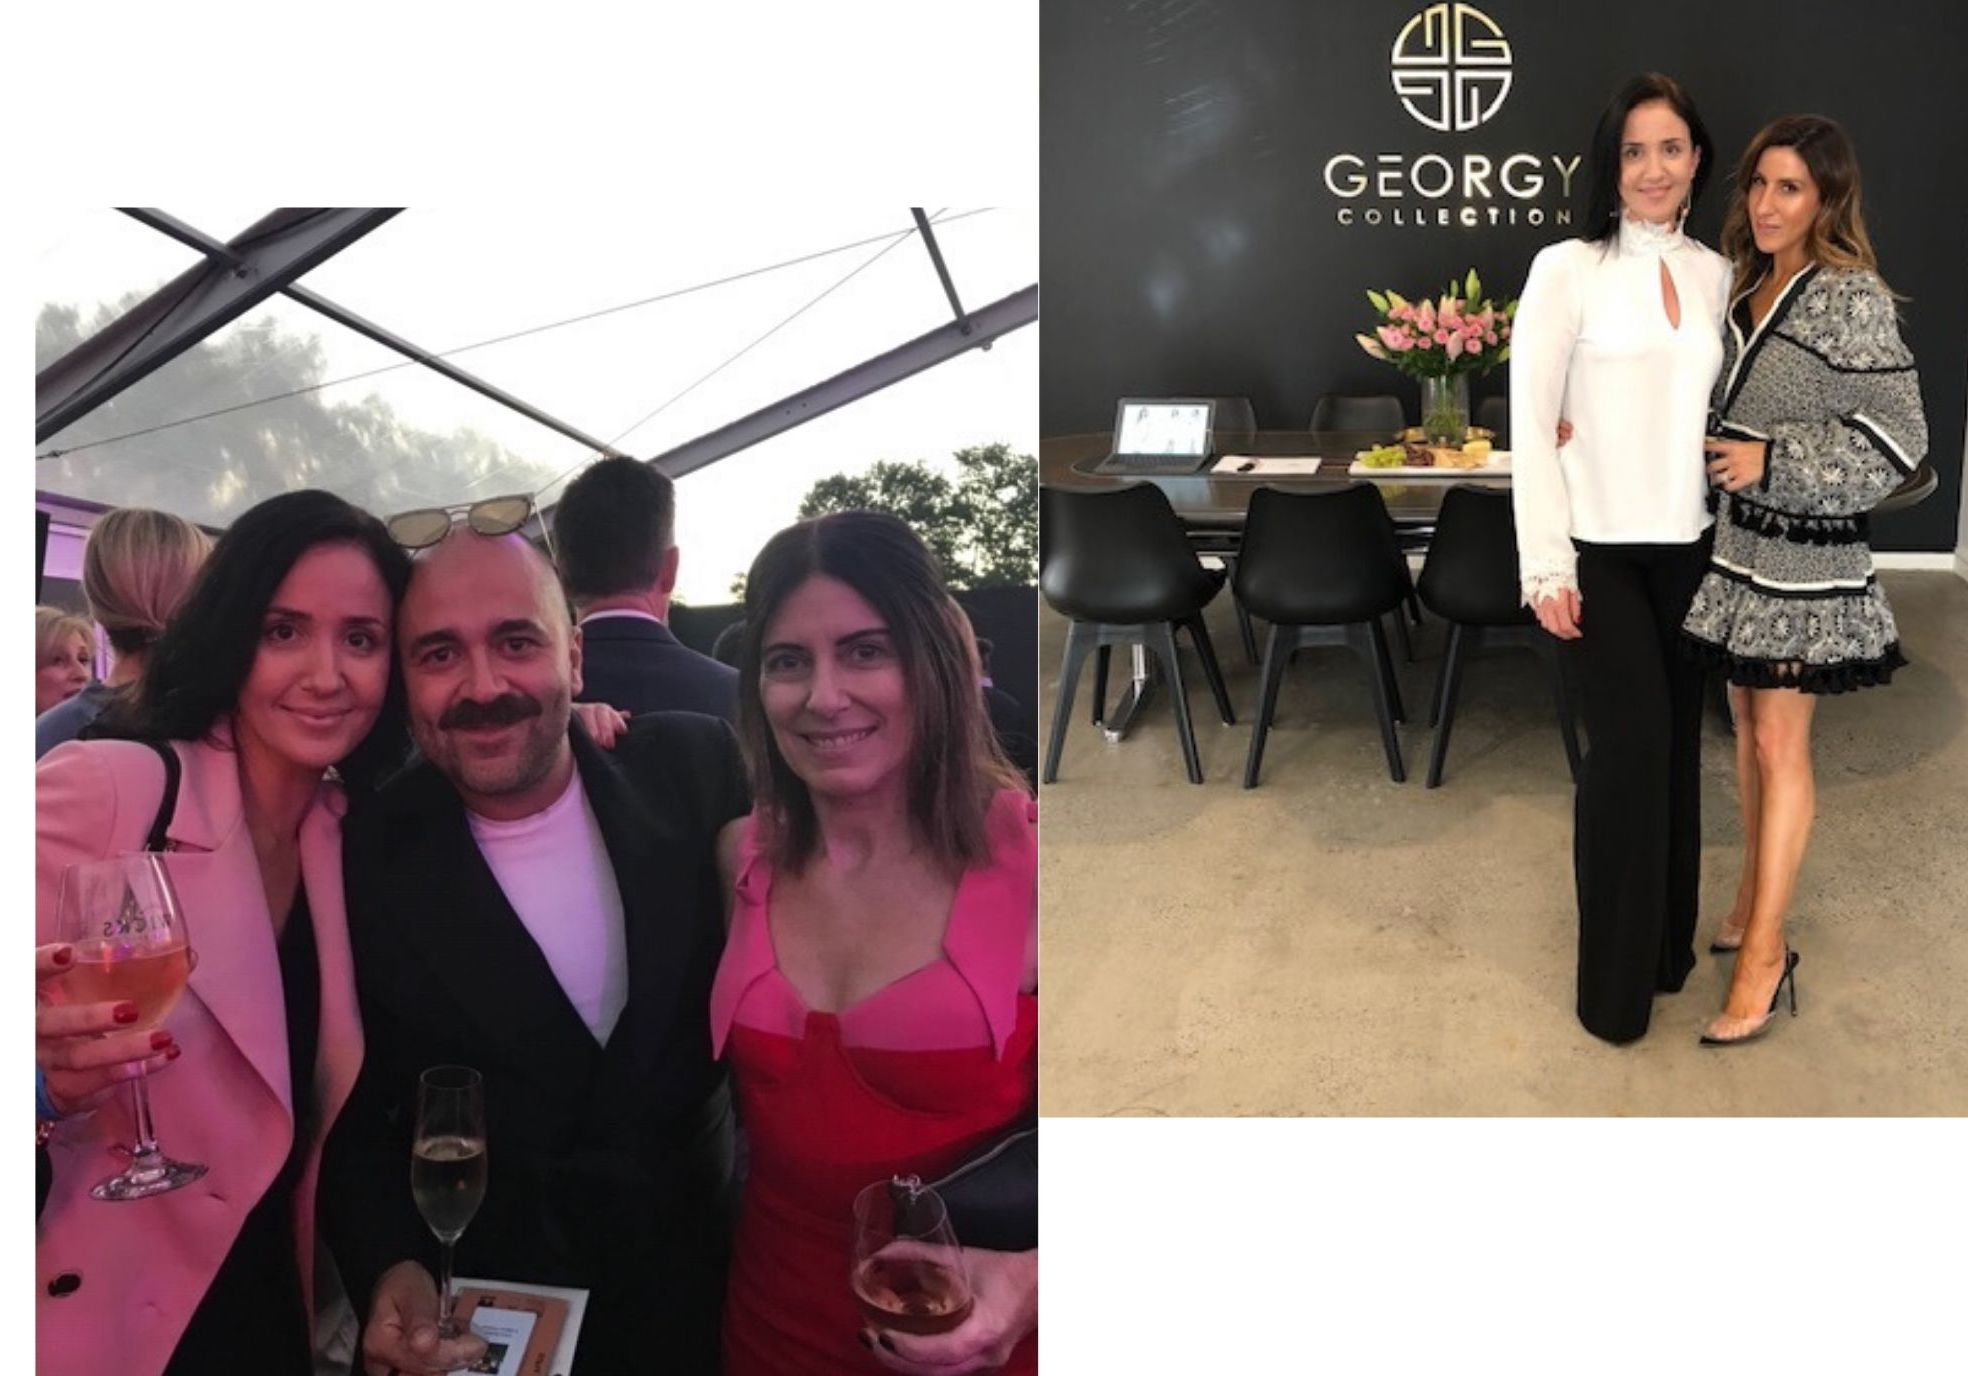 Designer Georgy Tsiavlis wearing one of her designs with Christ Kontos and team member Lisa, alson in Georgy